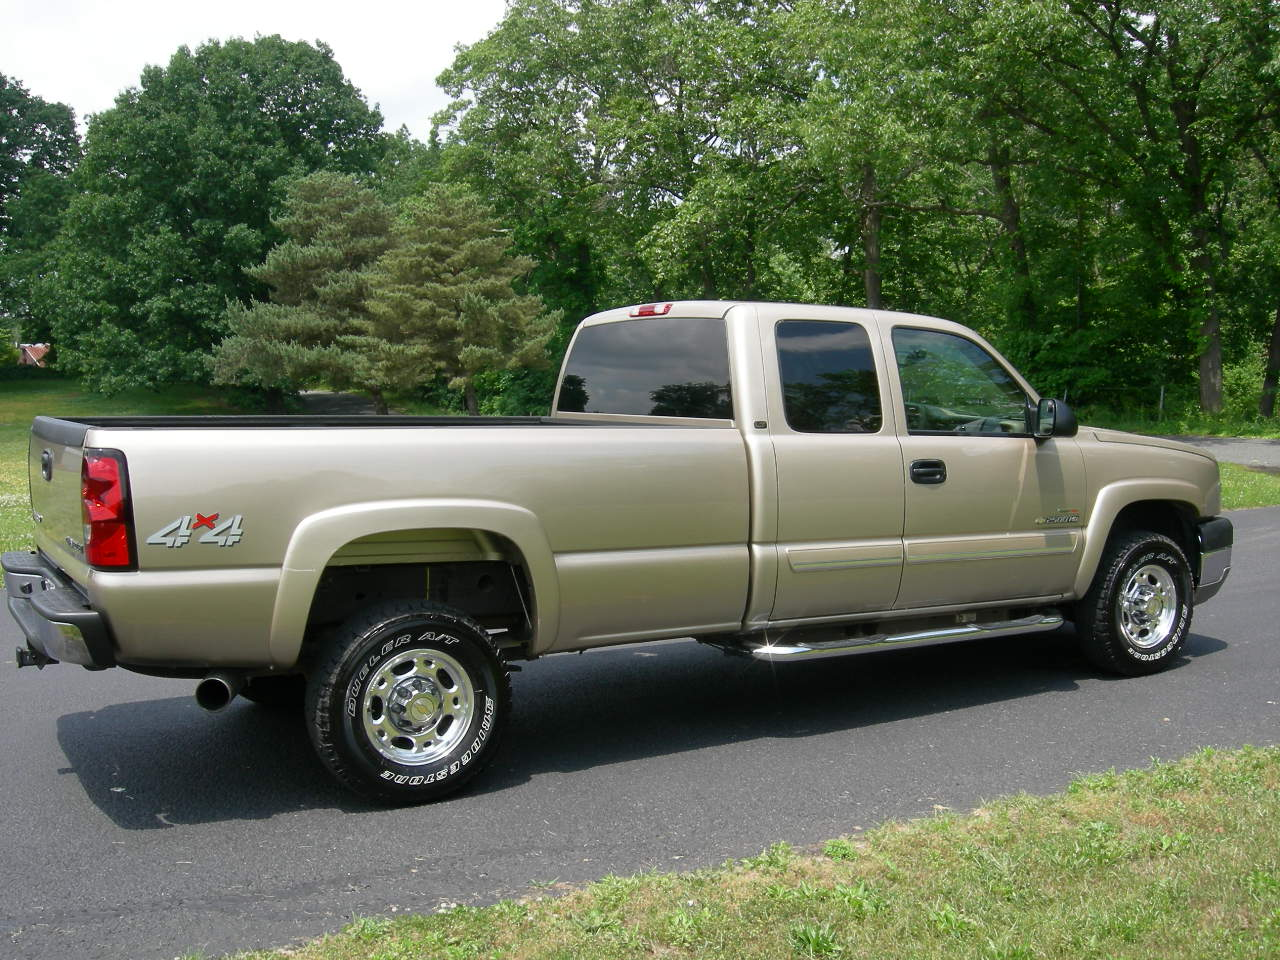 2004 chevrolet silverado 2500hd pictures cargurus. Black Bedroom Furniture Sets. Home Design Ideas